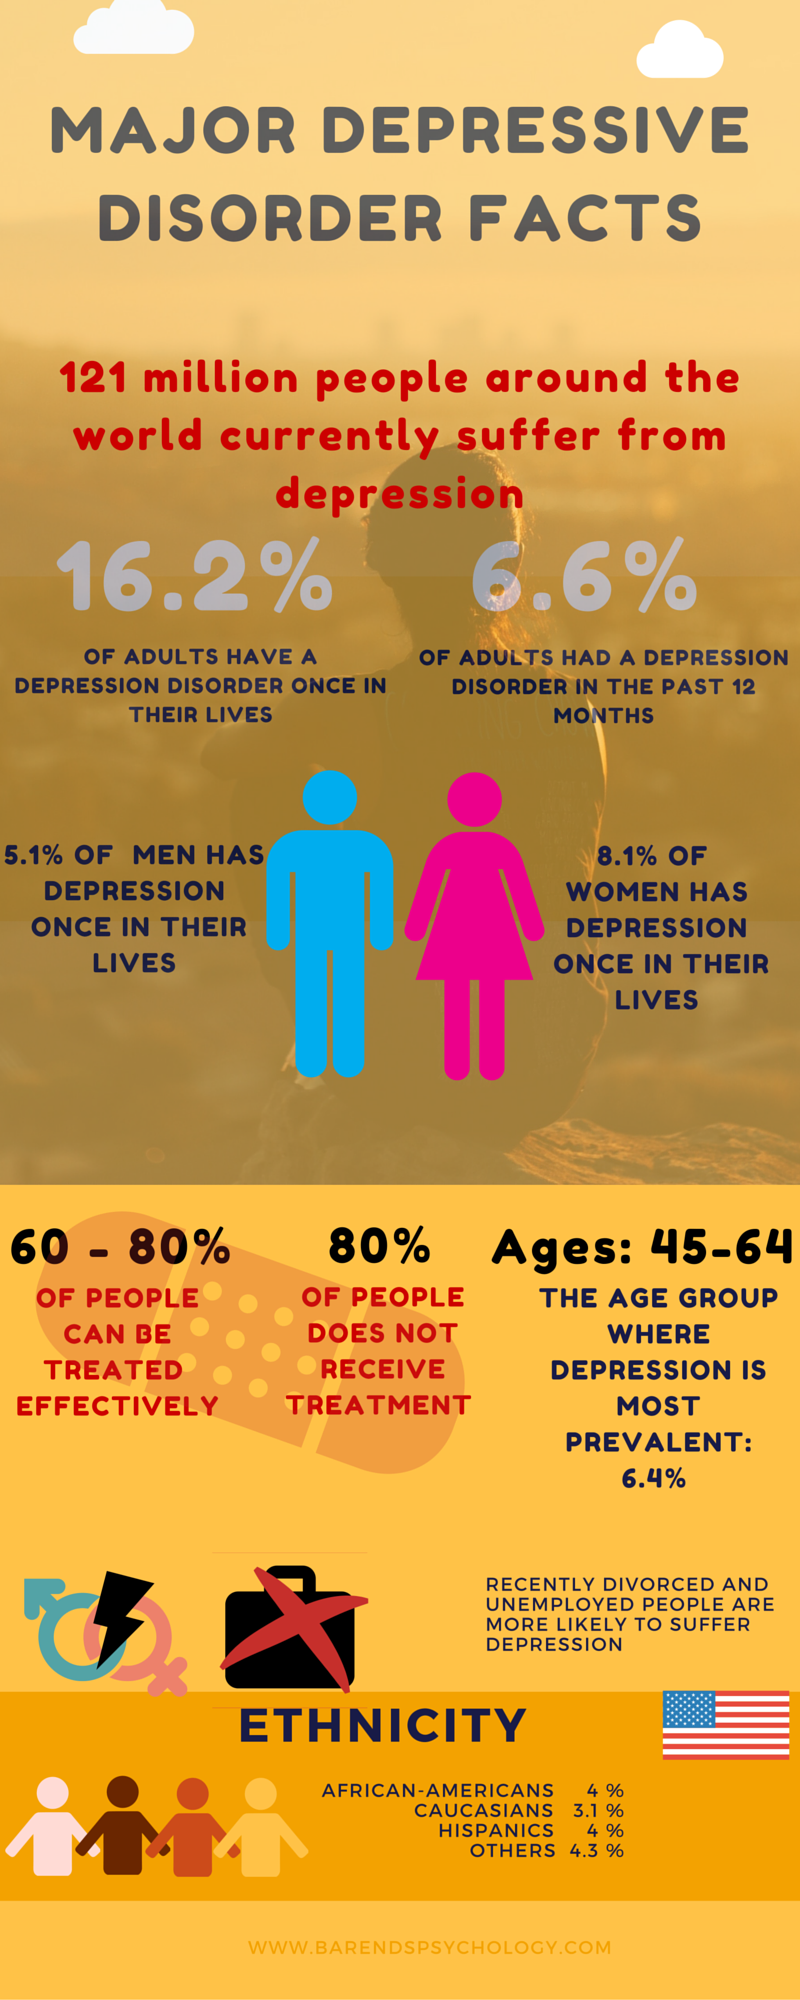 Interesting depression facts - infographic. Coping with depression